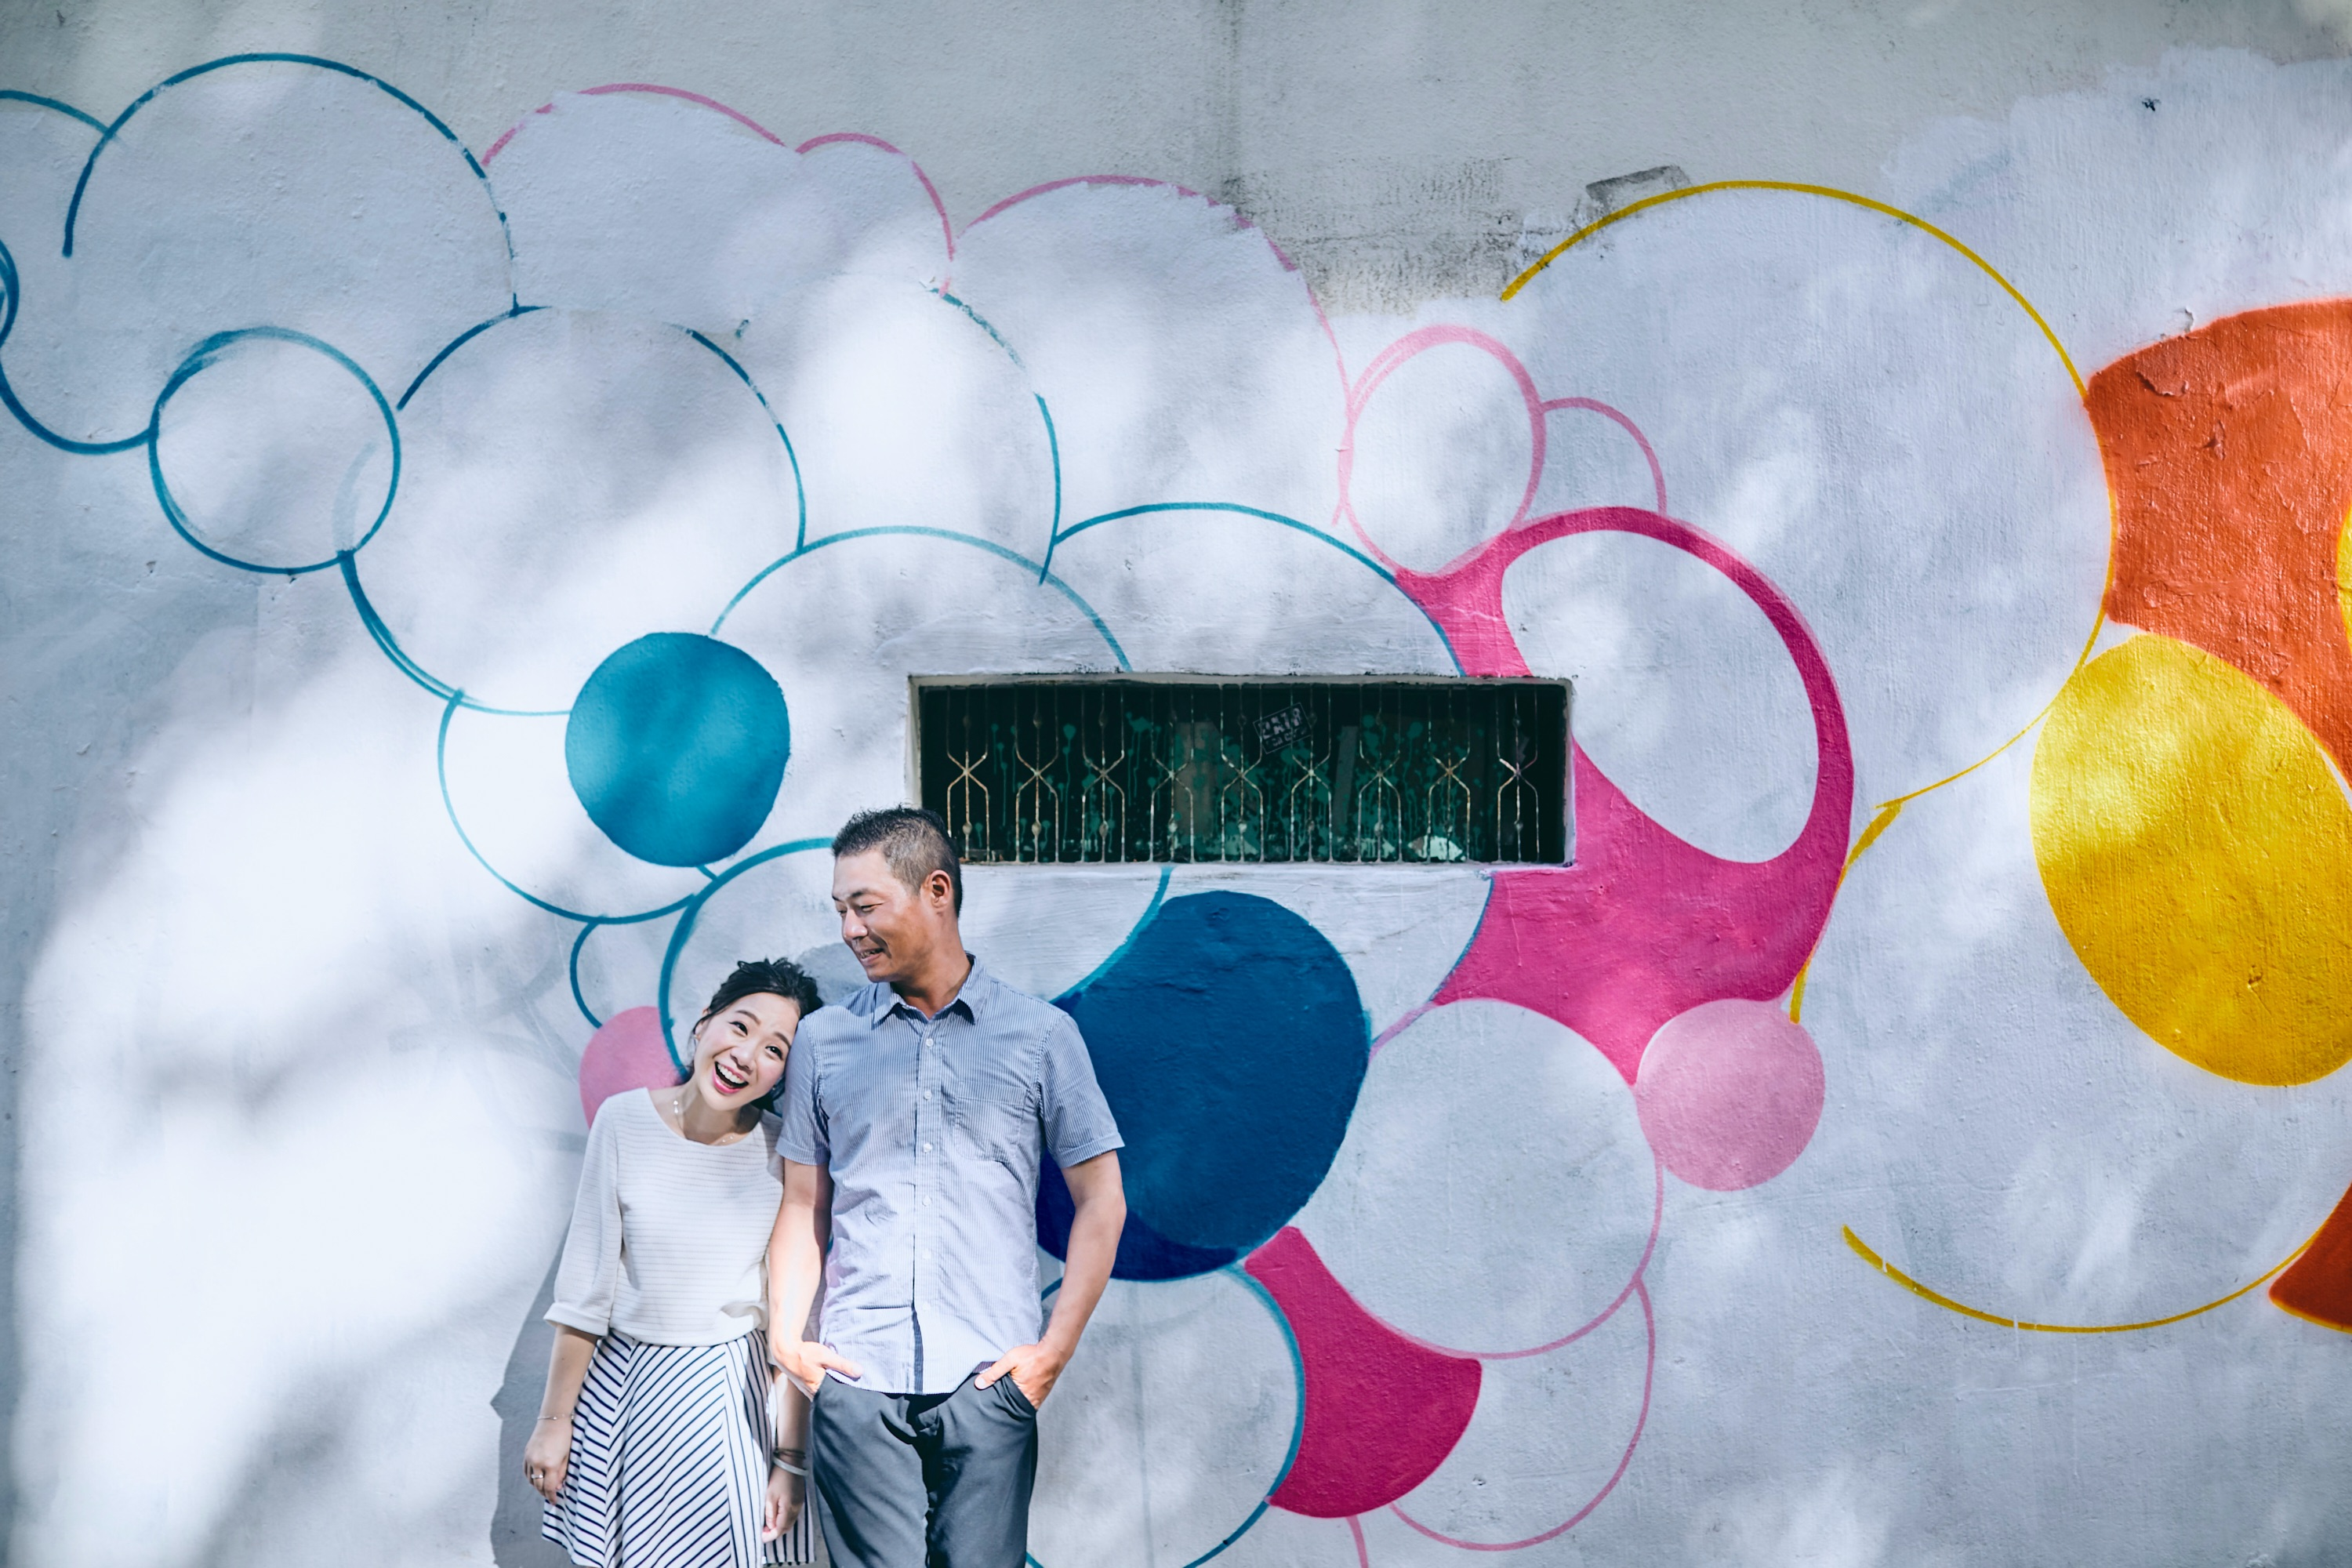 zOO Wedding Hong Kong Prewedding Photographer by Cheric 文青系 中上環 婚紗 禮服 結婚